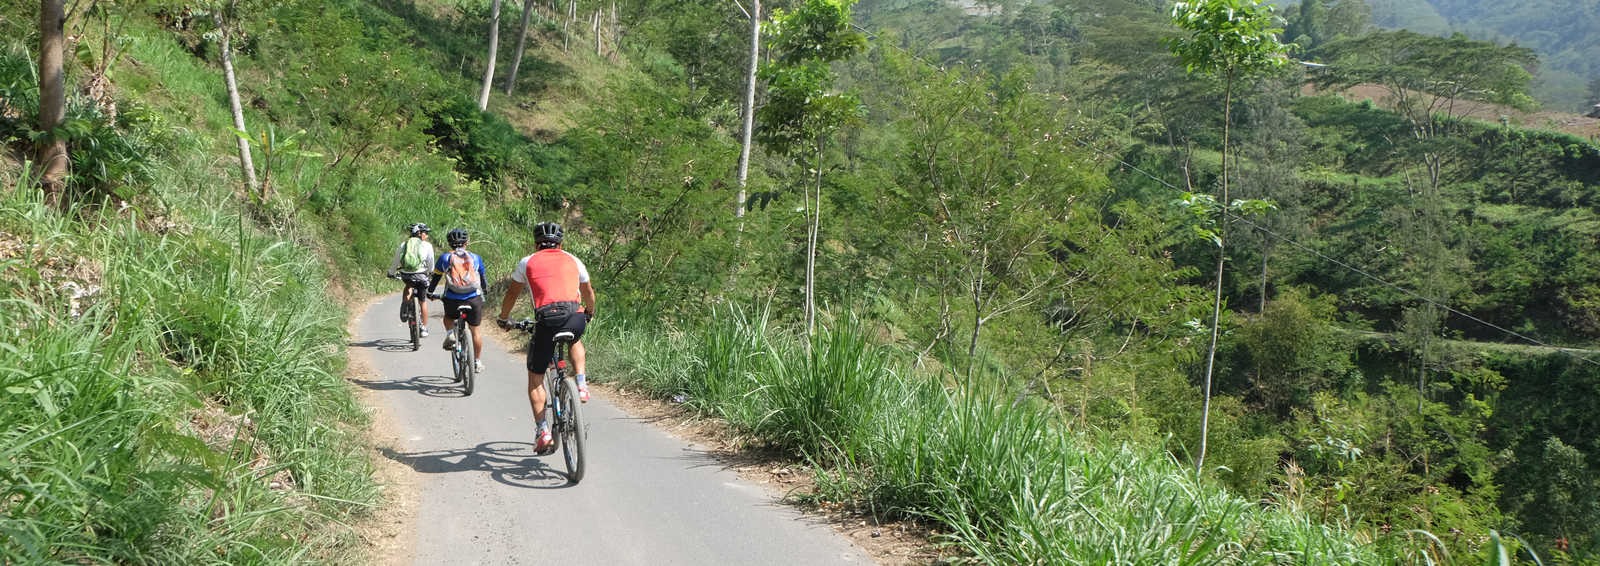 Cycling through Bali's mountainous interior